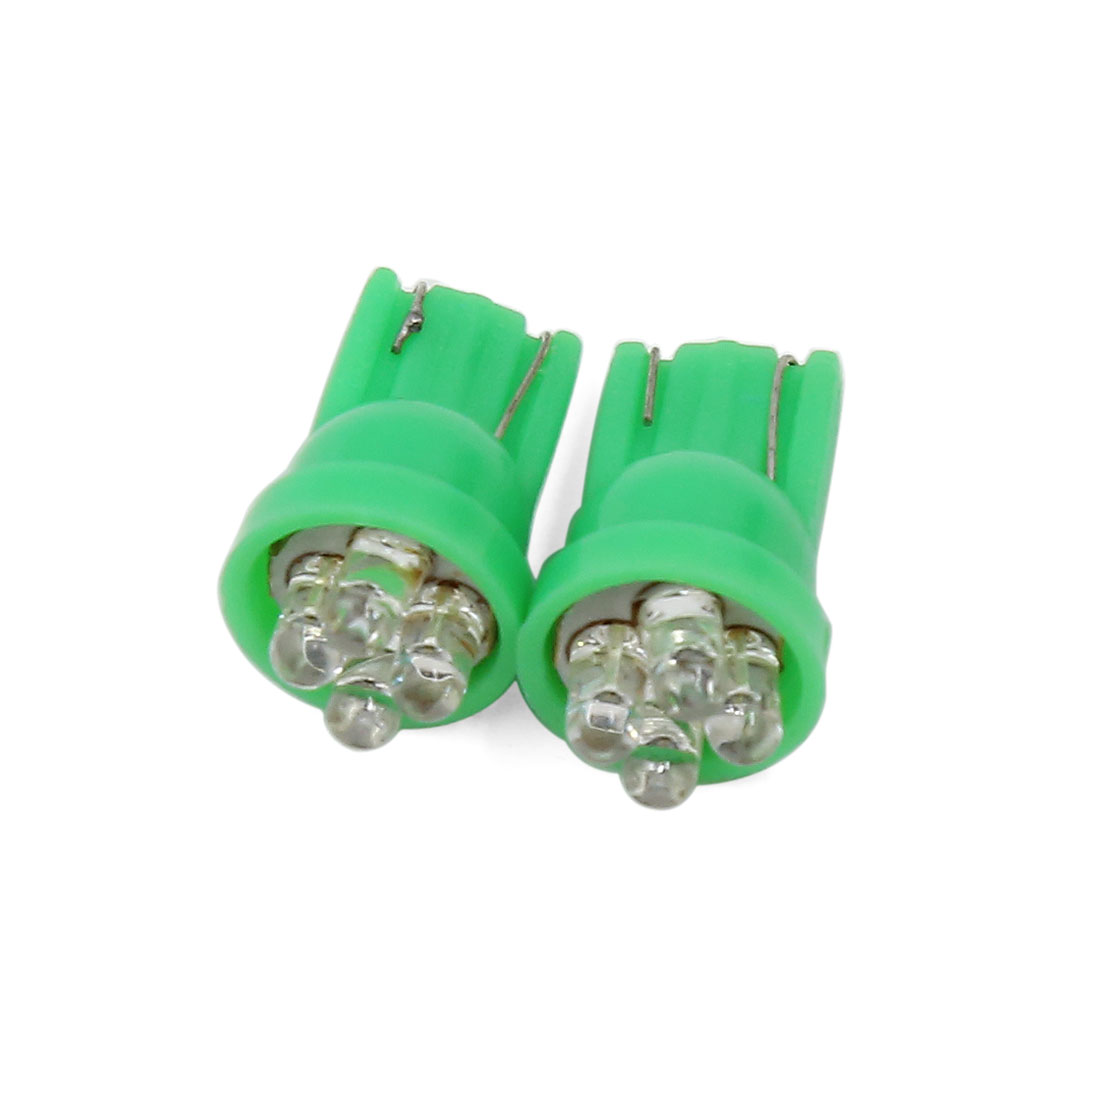 2 Pcs T10 W5W 2825 192 194 168 Green 4 LED Side Wedge Light Bulb DC 12V Interior